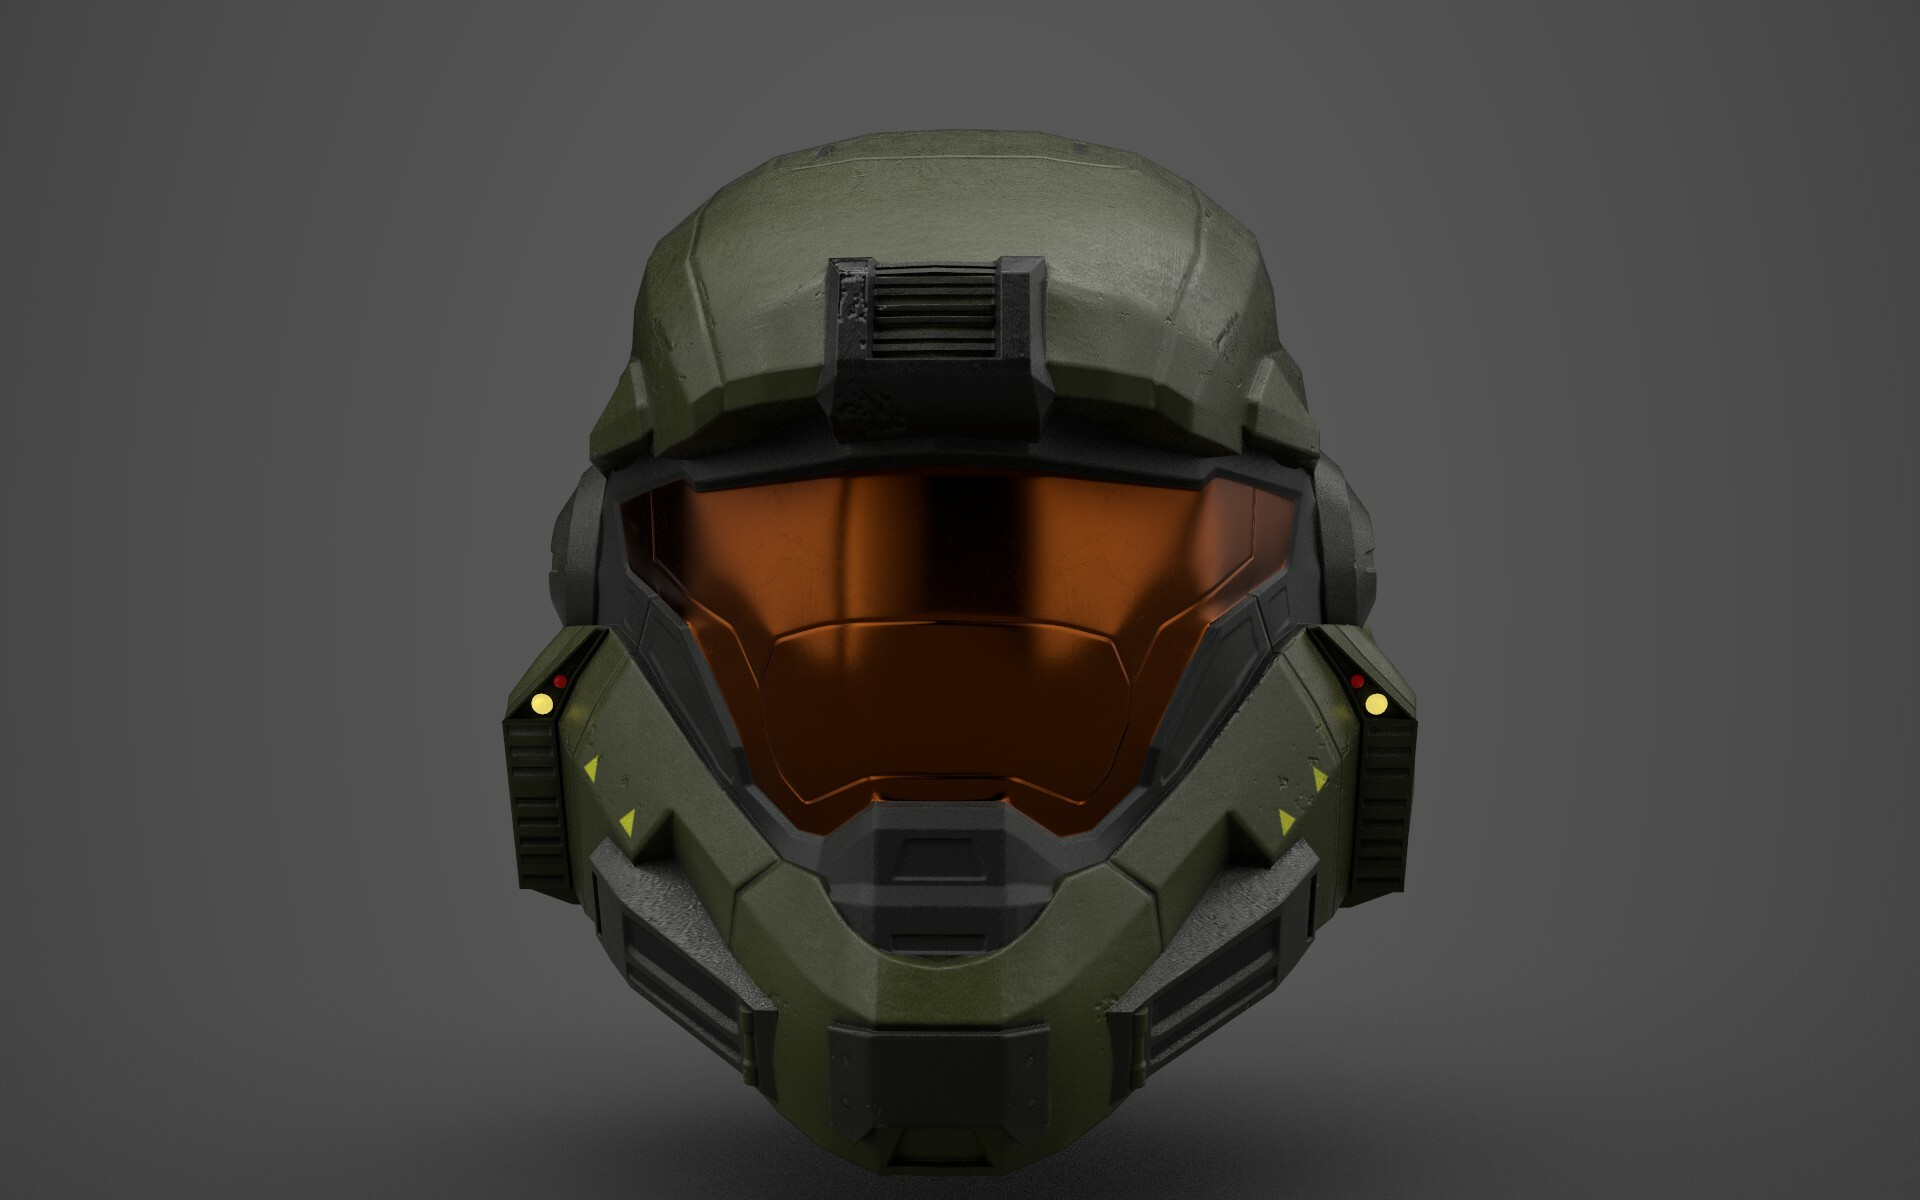 ArtStation - Halo - Mark V [B], Christian Kendall